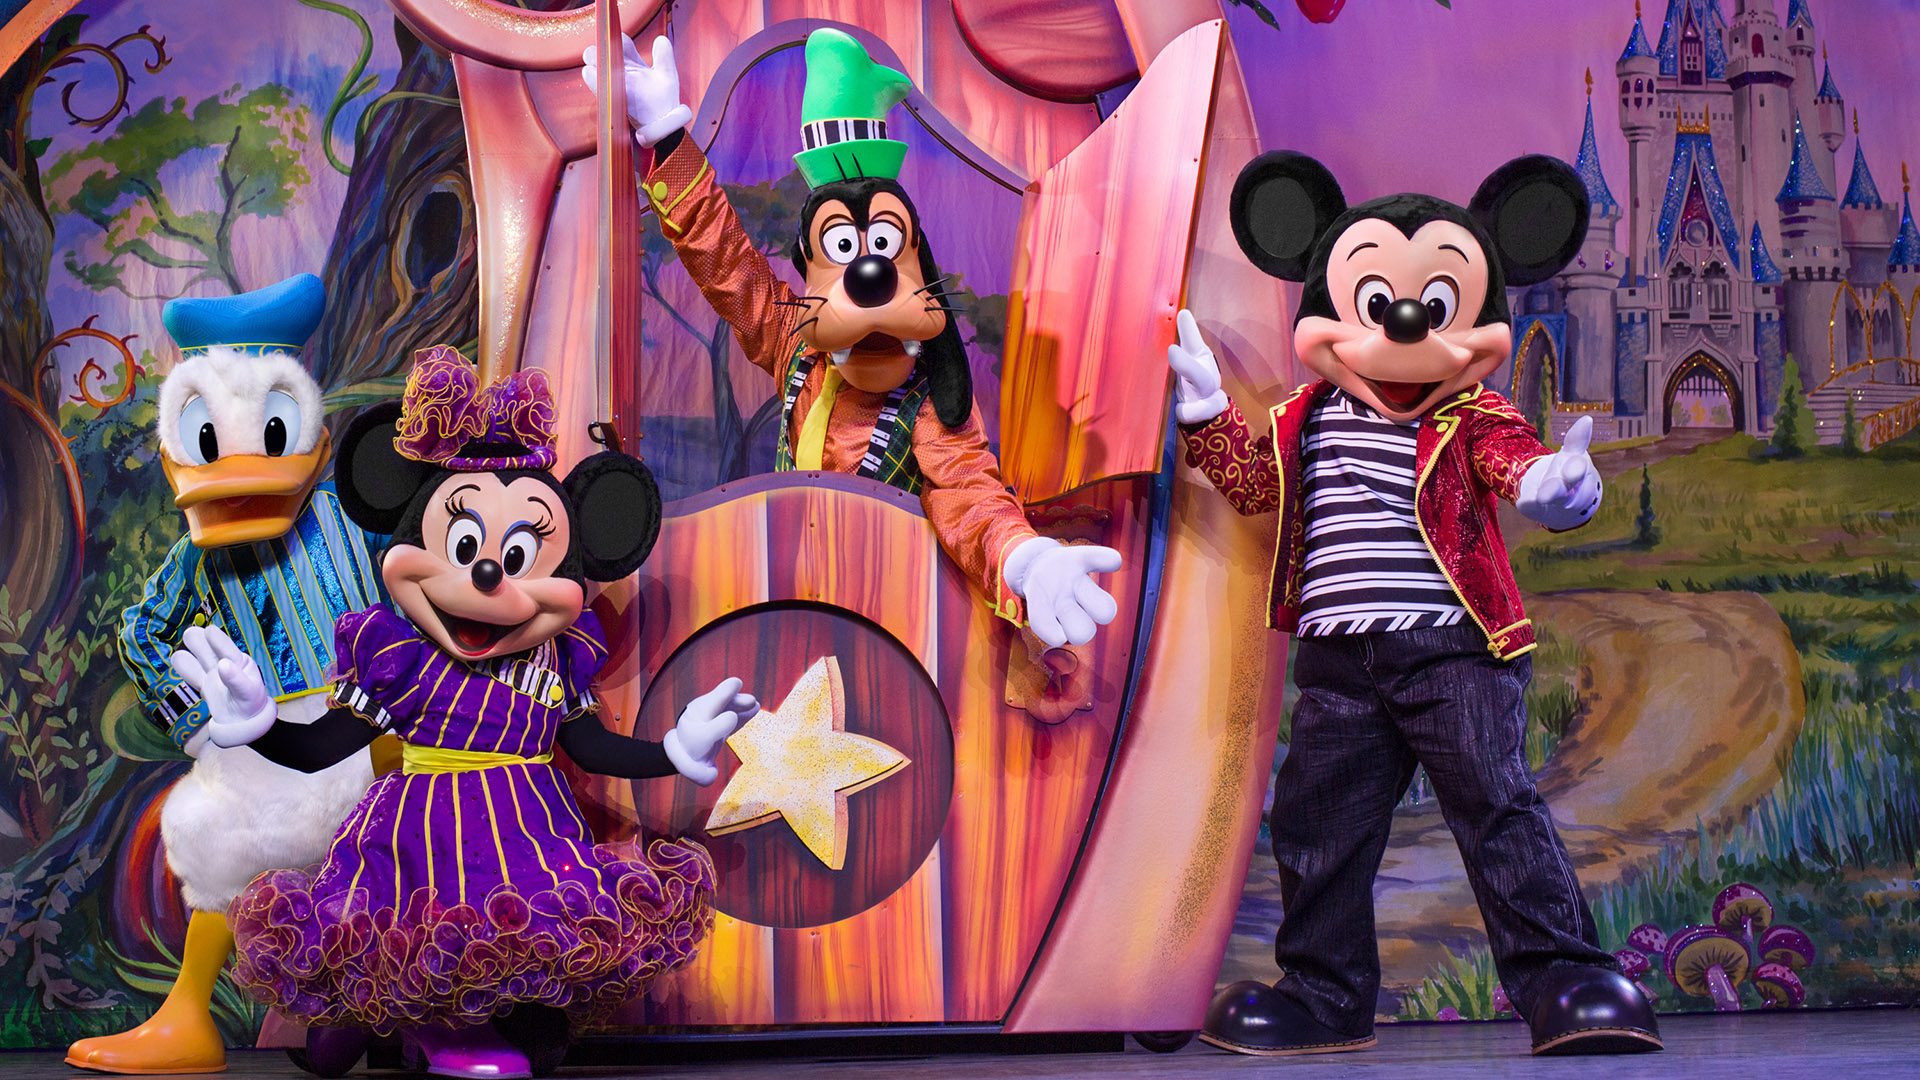 Tickets on sale soon for an enchanting night with Mickey, Minnie and other Disney favorites